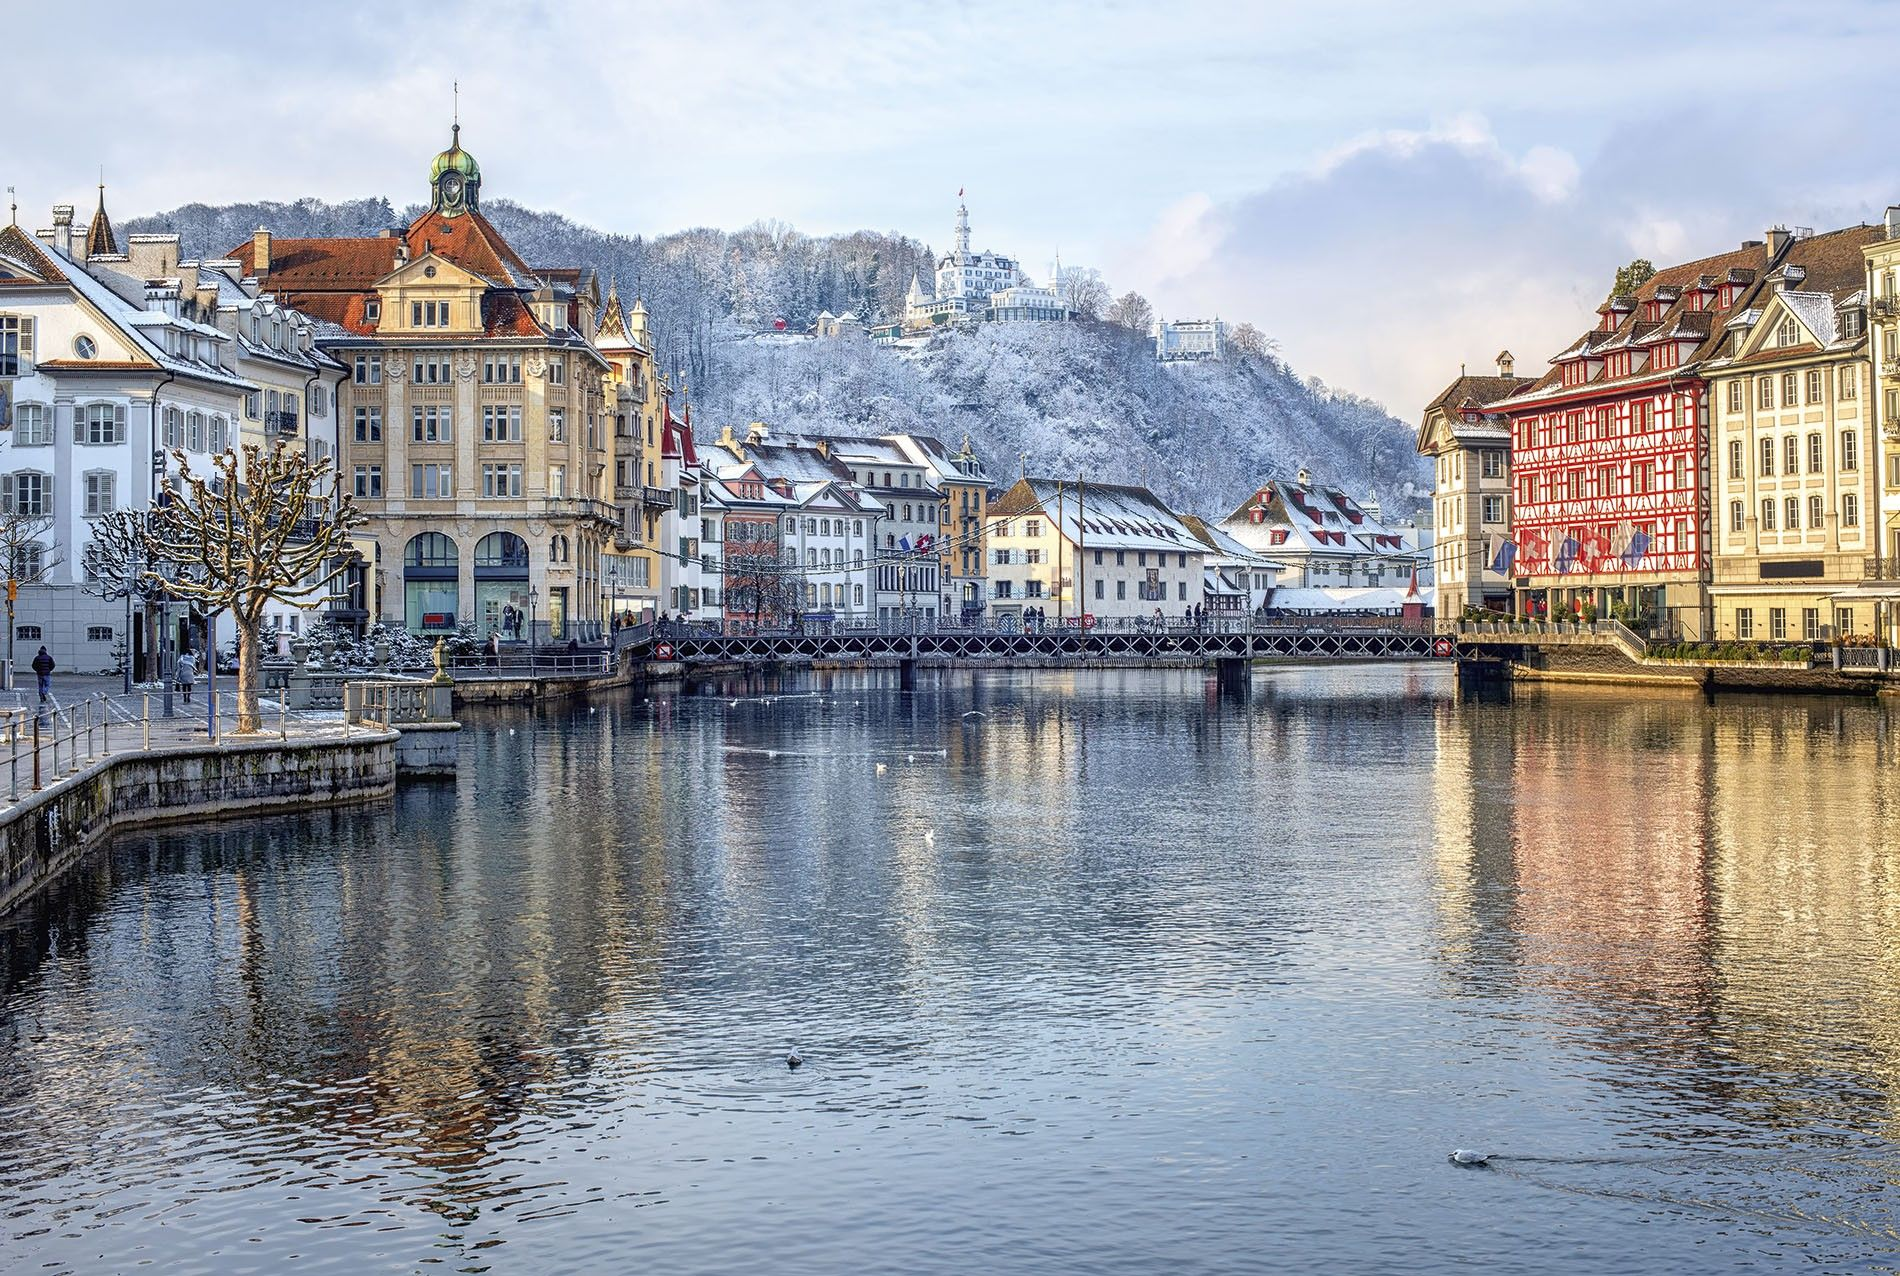 The Reuss river running through the picturesque old-town of Lucerne, in Switzerland, with its pastel-coloured houses and snowy mountains in the backdrop.